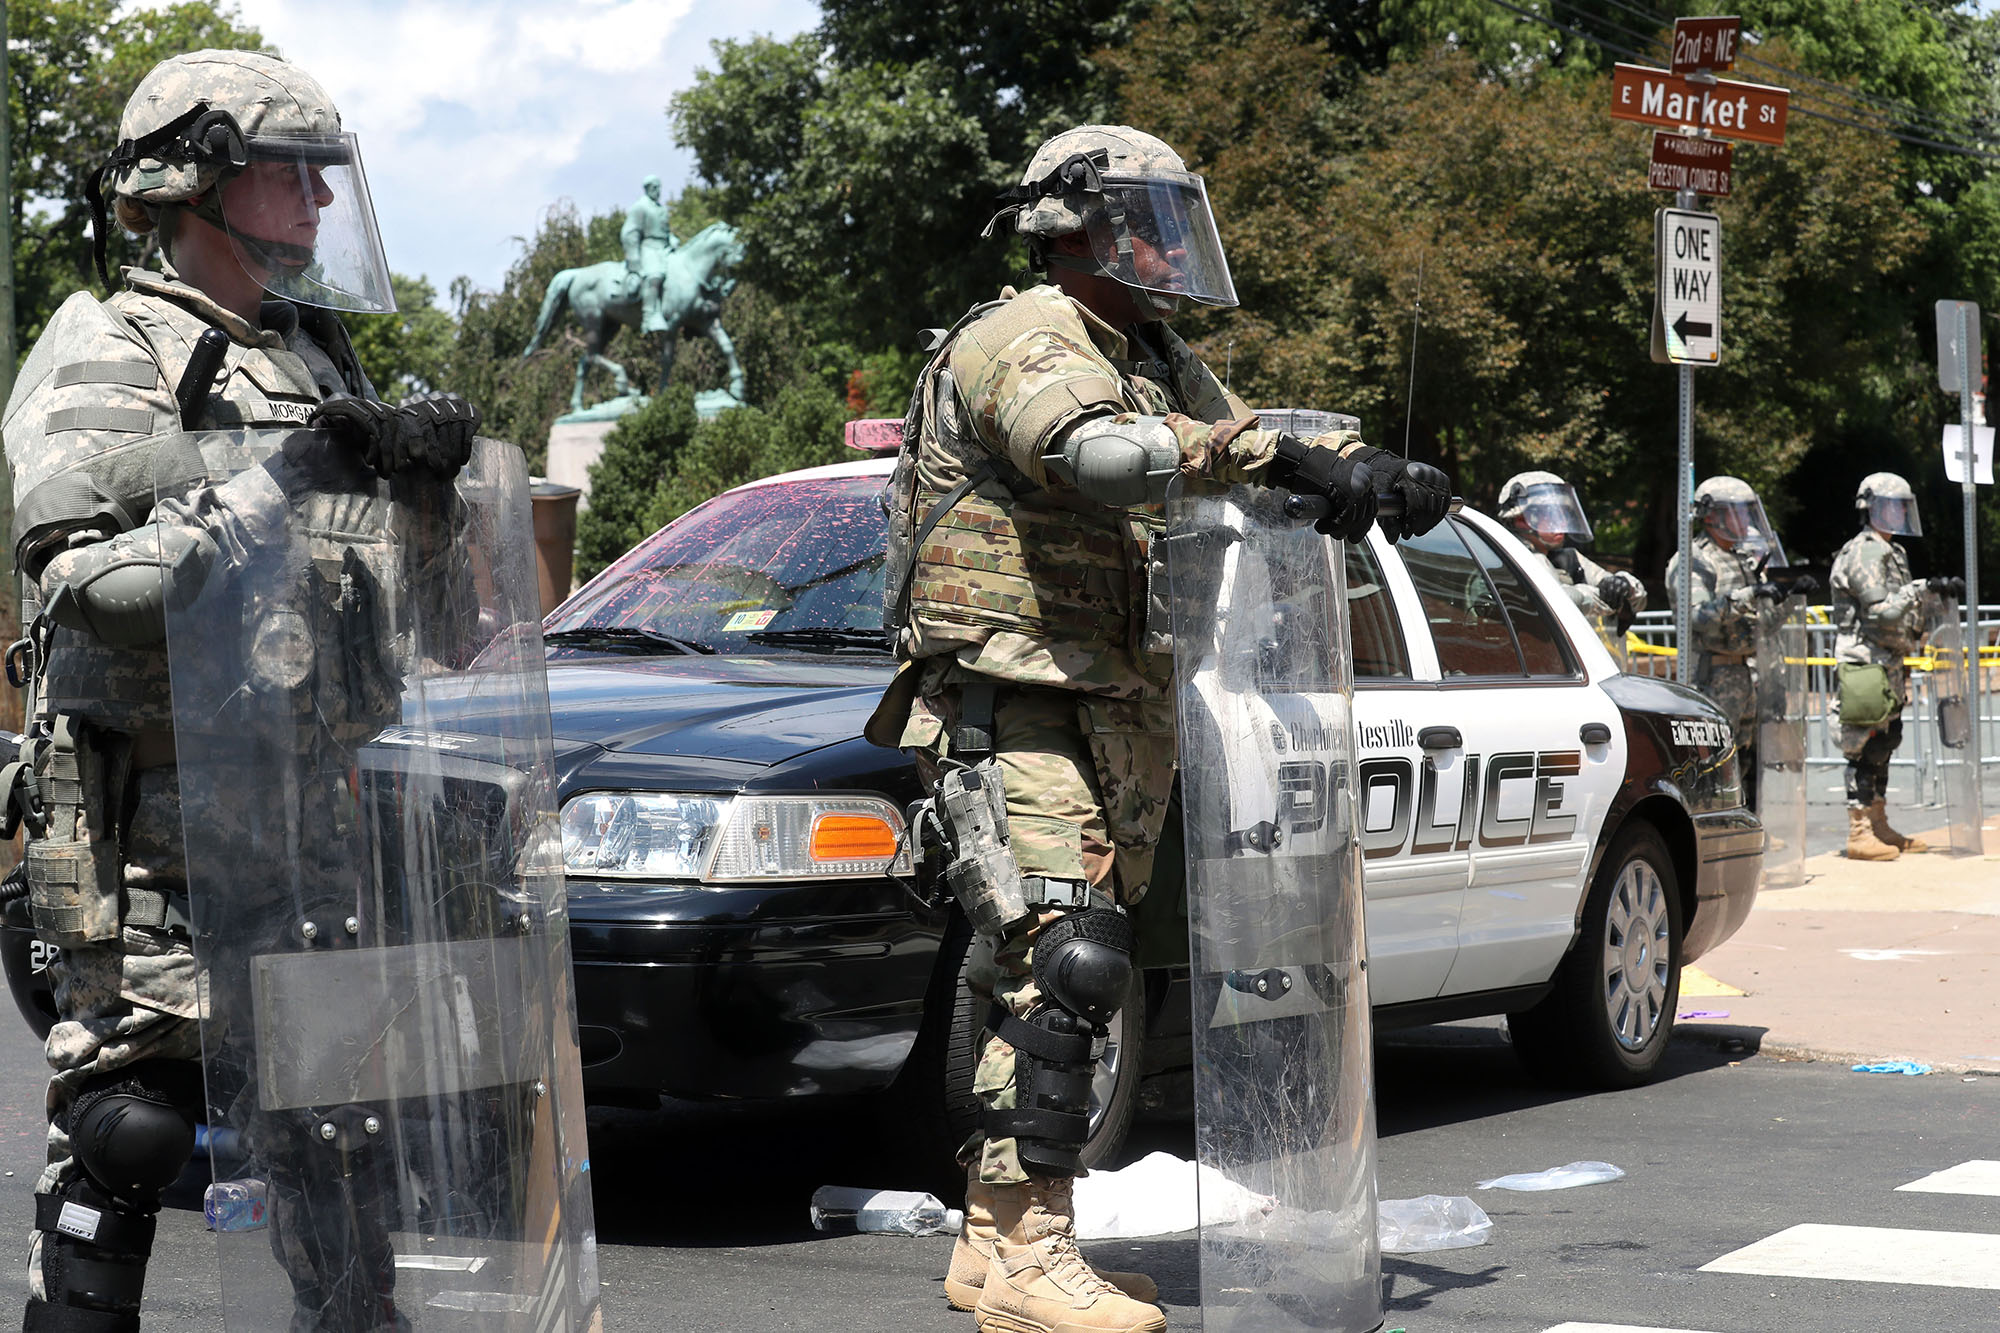 Police maintain a perimeter around Emancipation Park after an unlawful assembly was declared before the scheduled start of the Unite the Right rally in Charlottesville on Saturday, August 12, 2017.